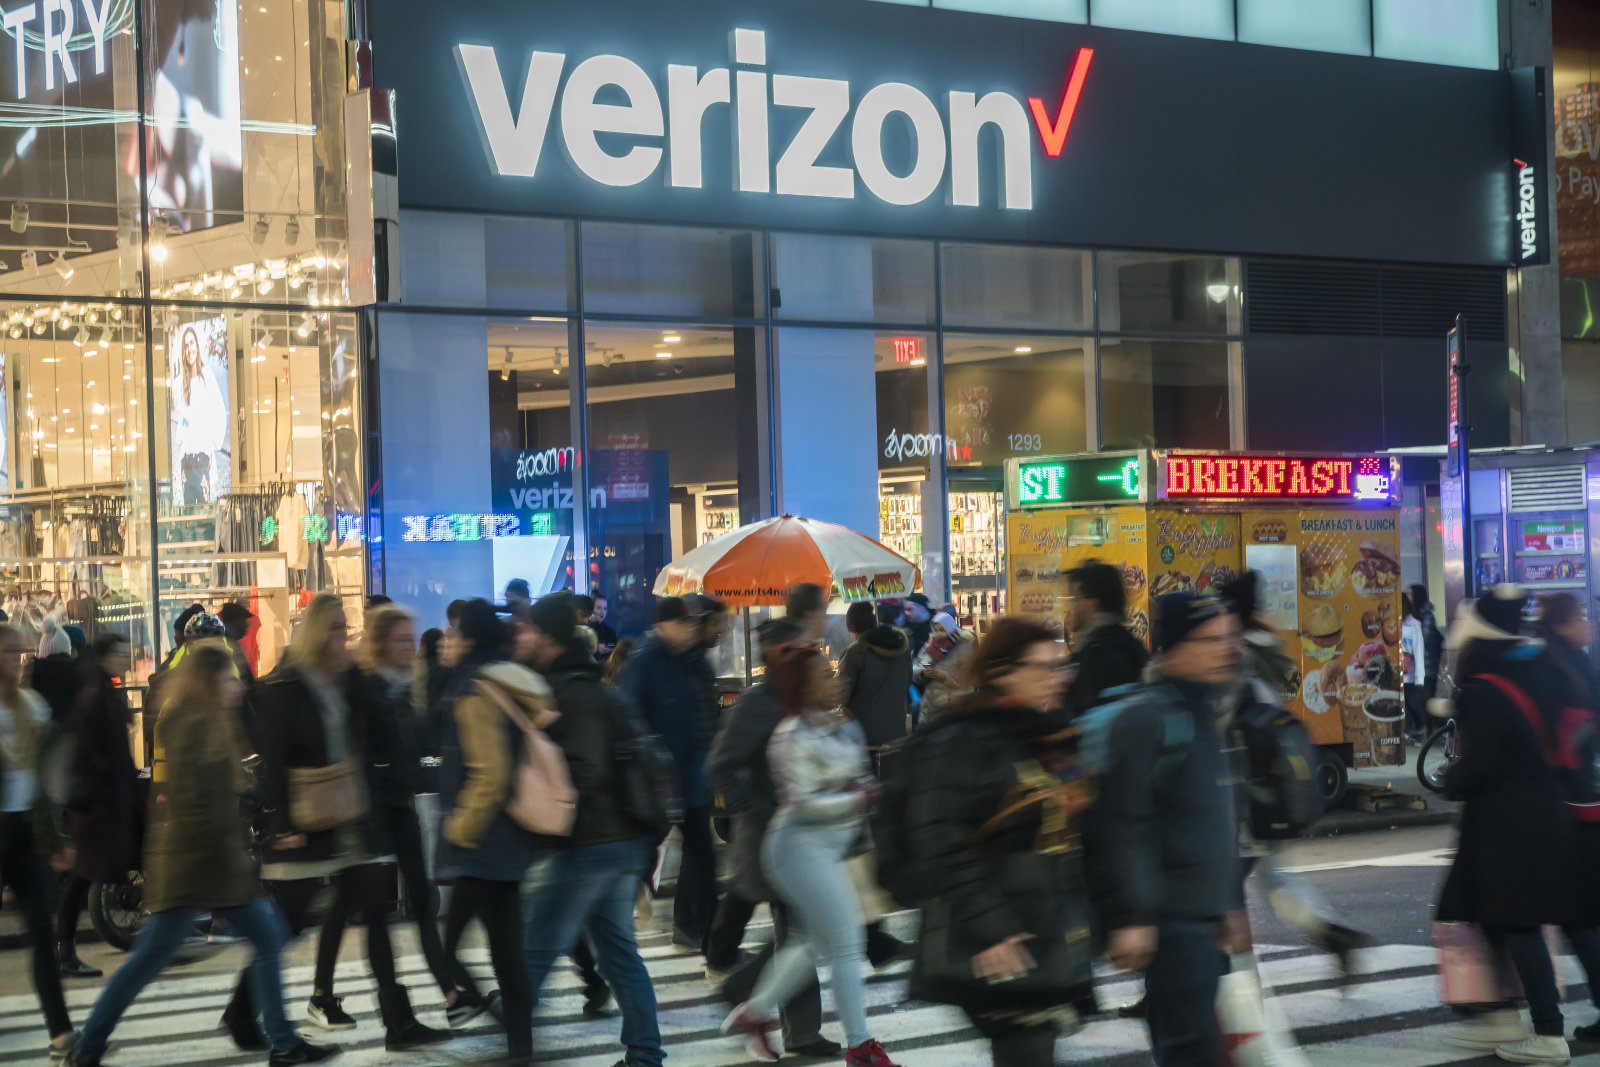 A Verizon Wireless store in the Herald Square neighborhood in New York on Tuesday, April 10, 2018. (�Photo by Richard B. Levine)